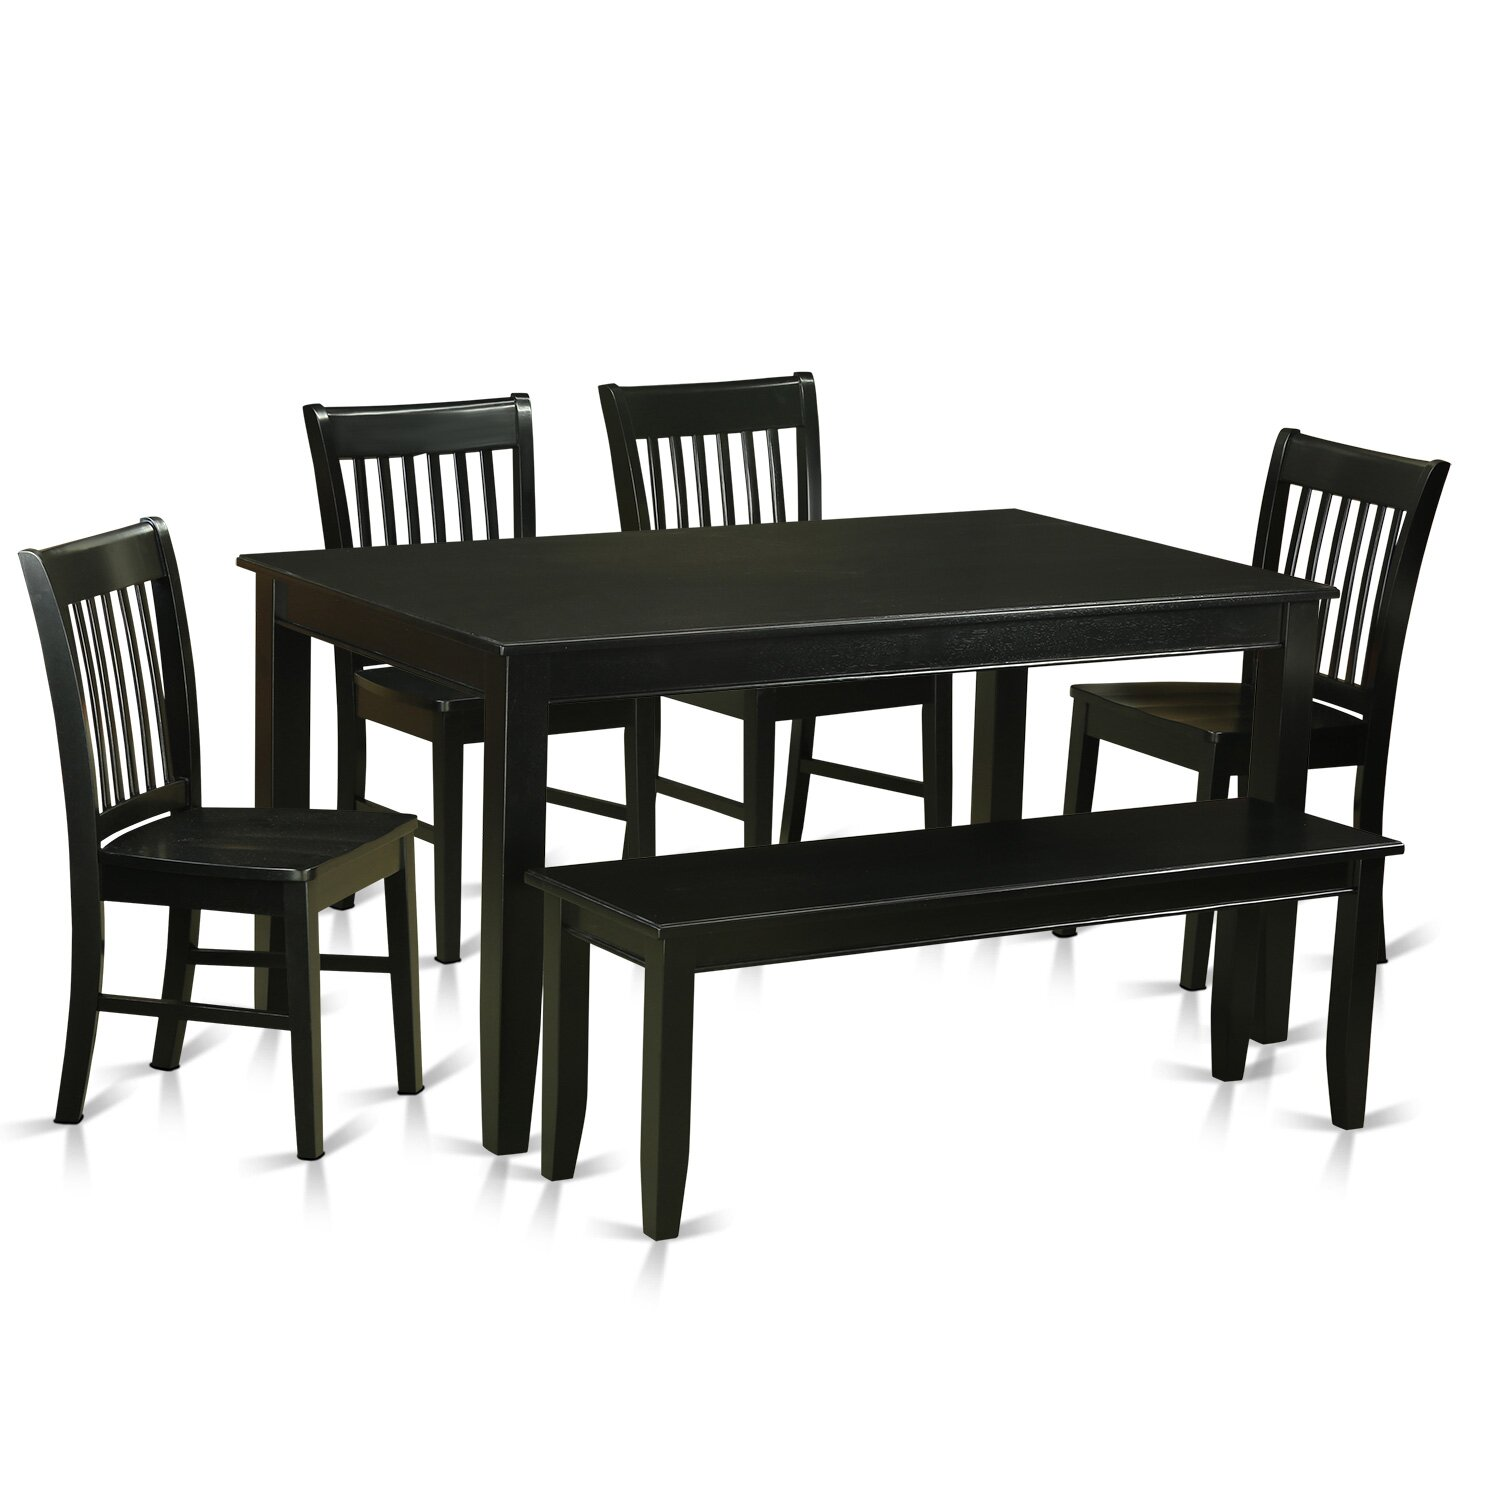 East west dudley 6 piece dining set wayfair for Dining room sets 6 piece